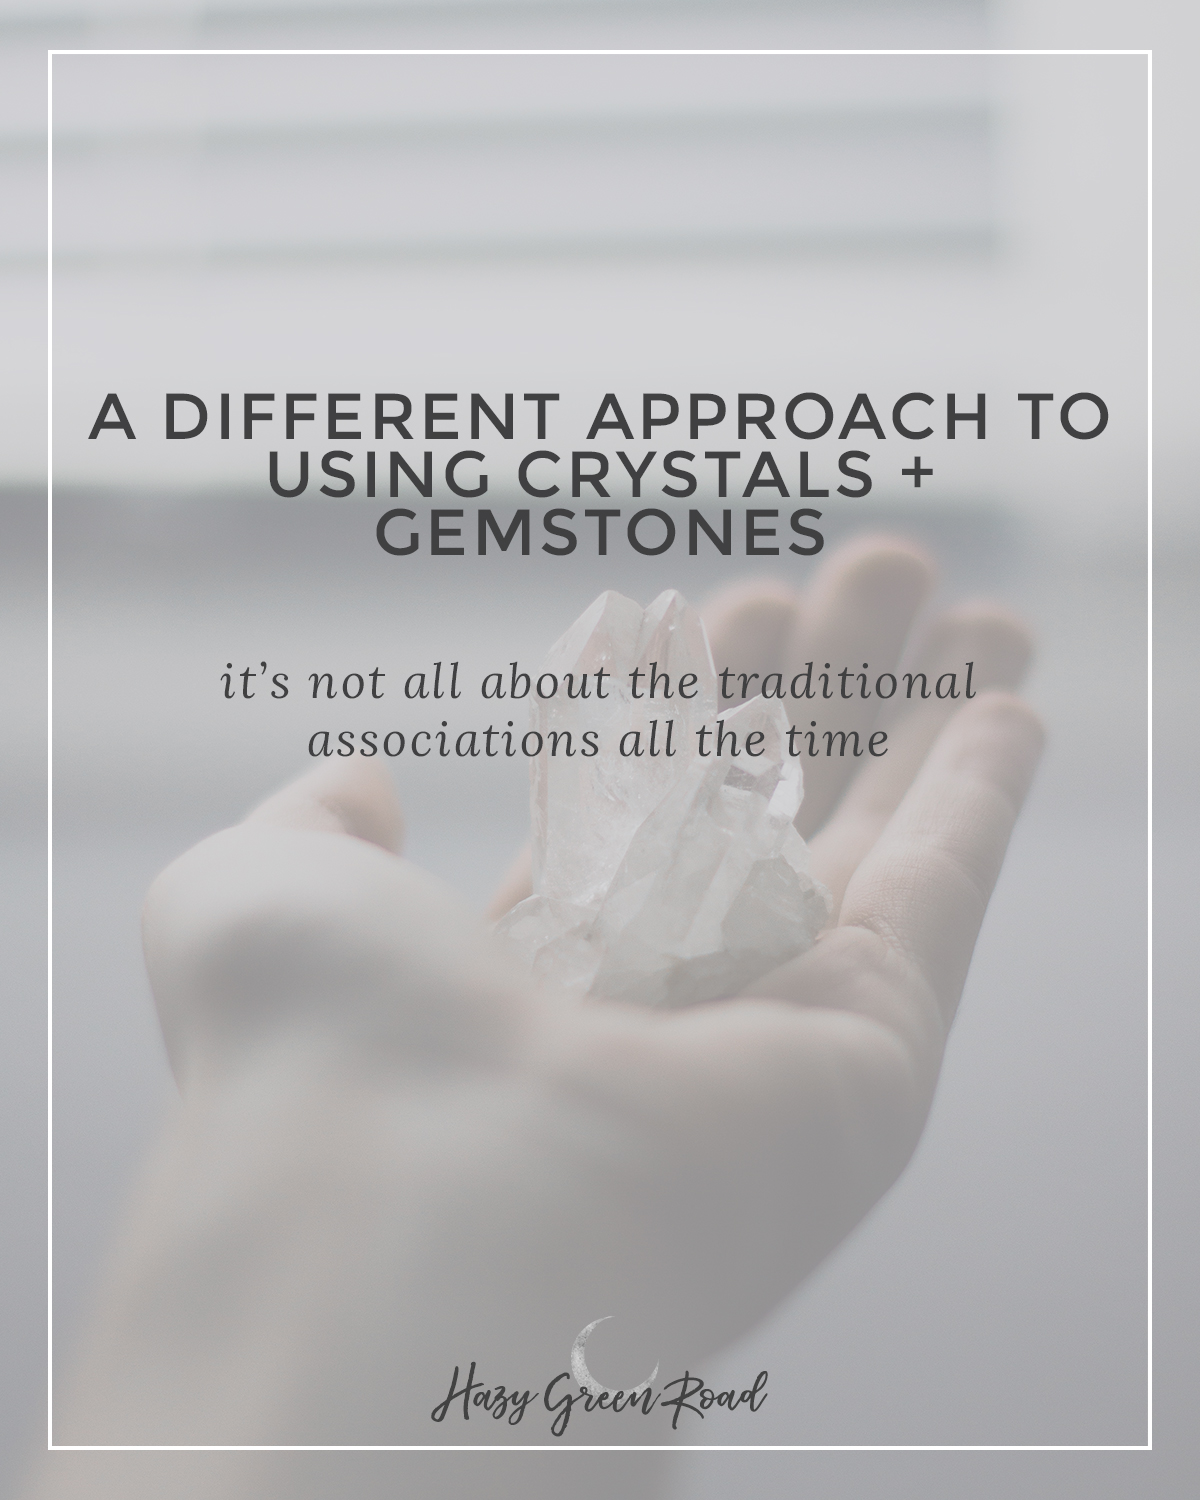 Using crystals and gemstones in your practice doesn't have to equate to traditional meanings. A different approach is needed!